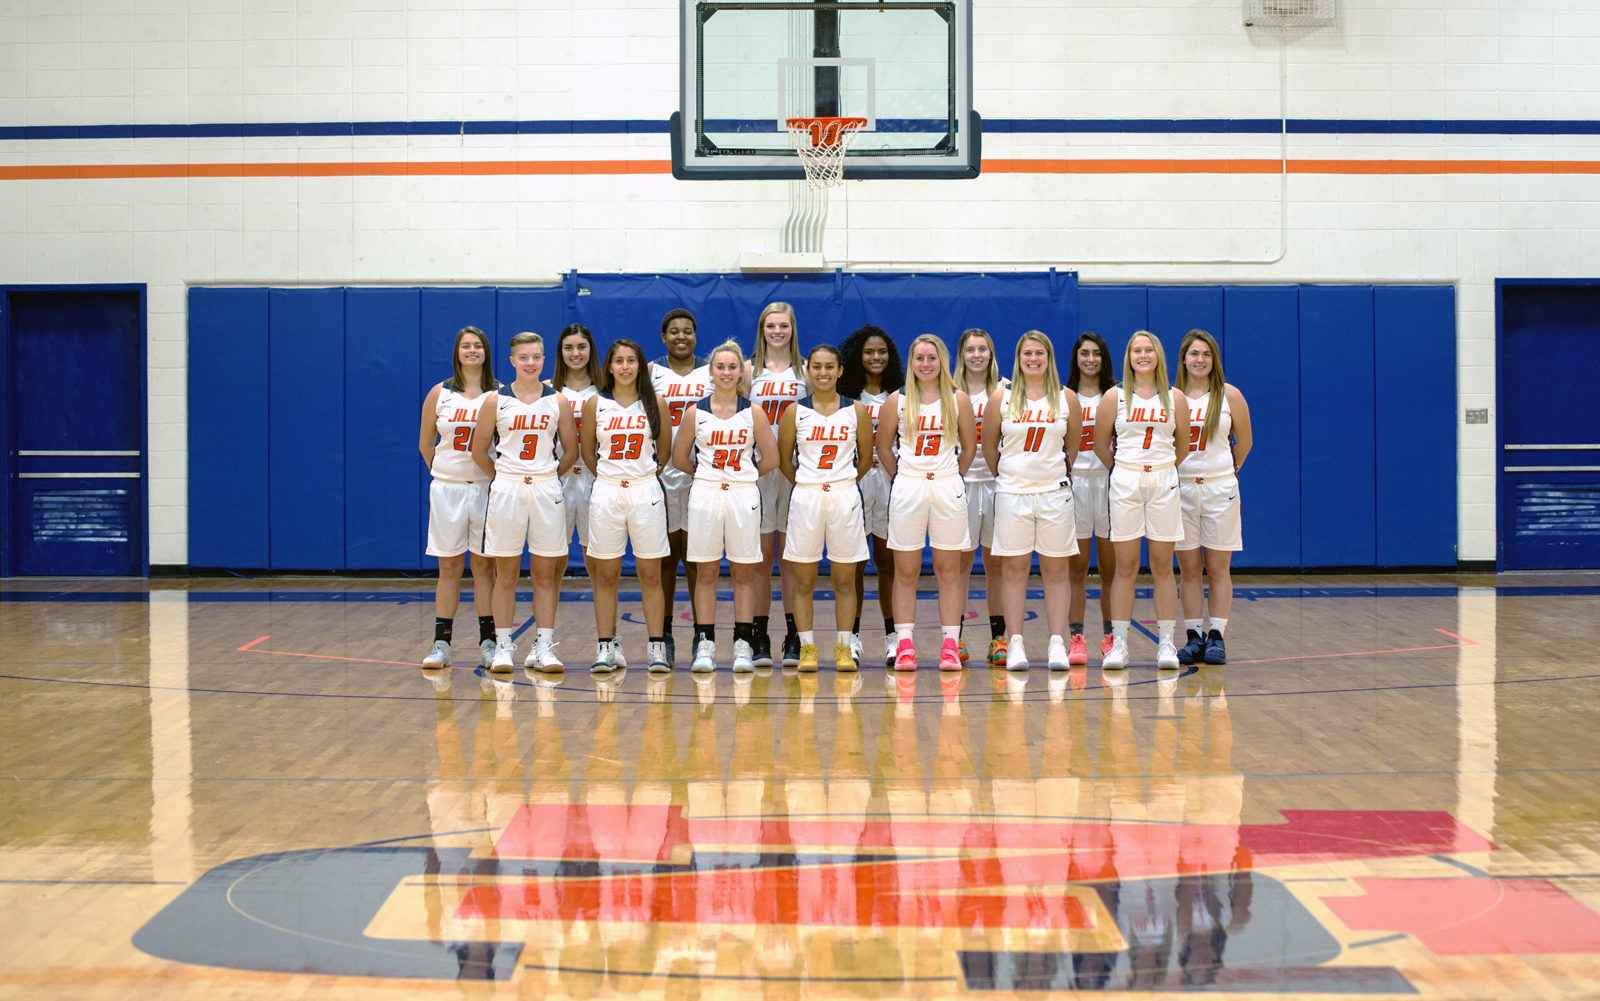 Women's Basketball Team Photo 2018